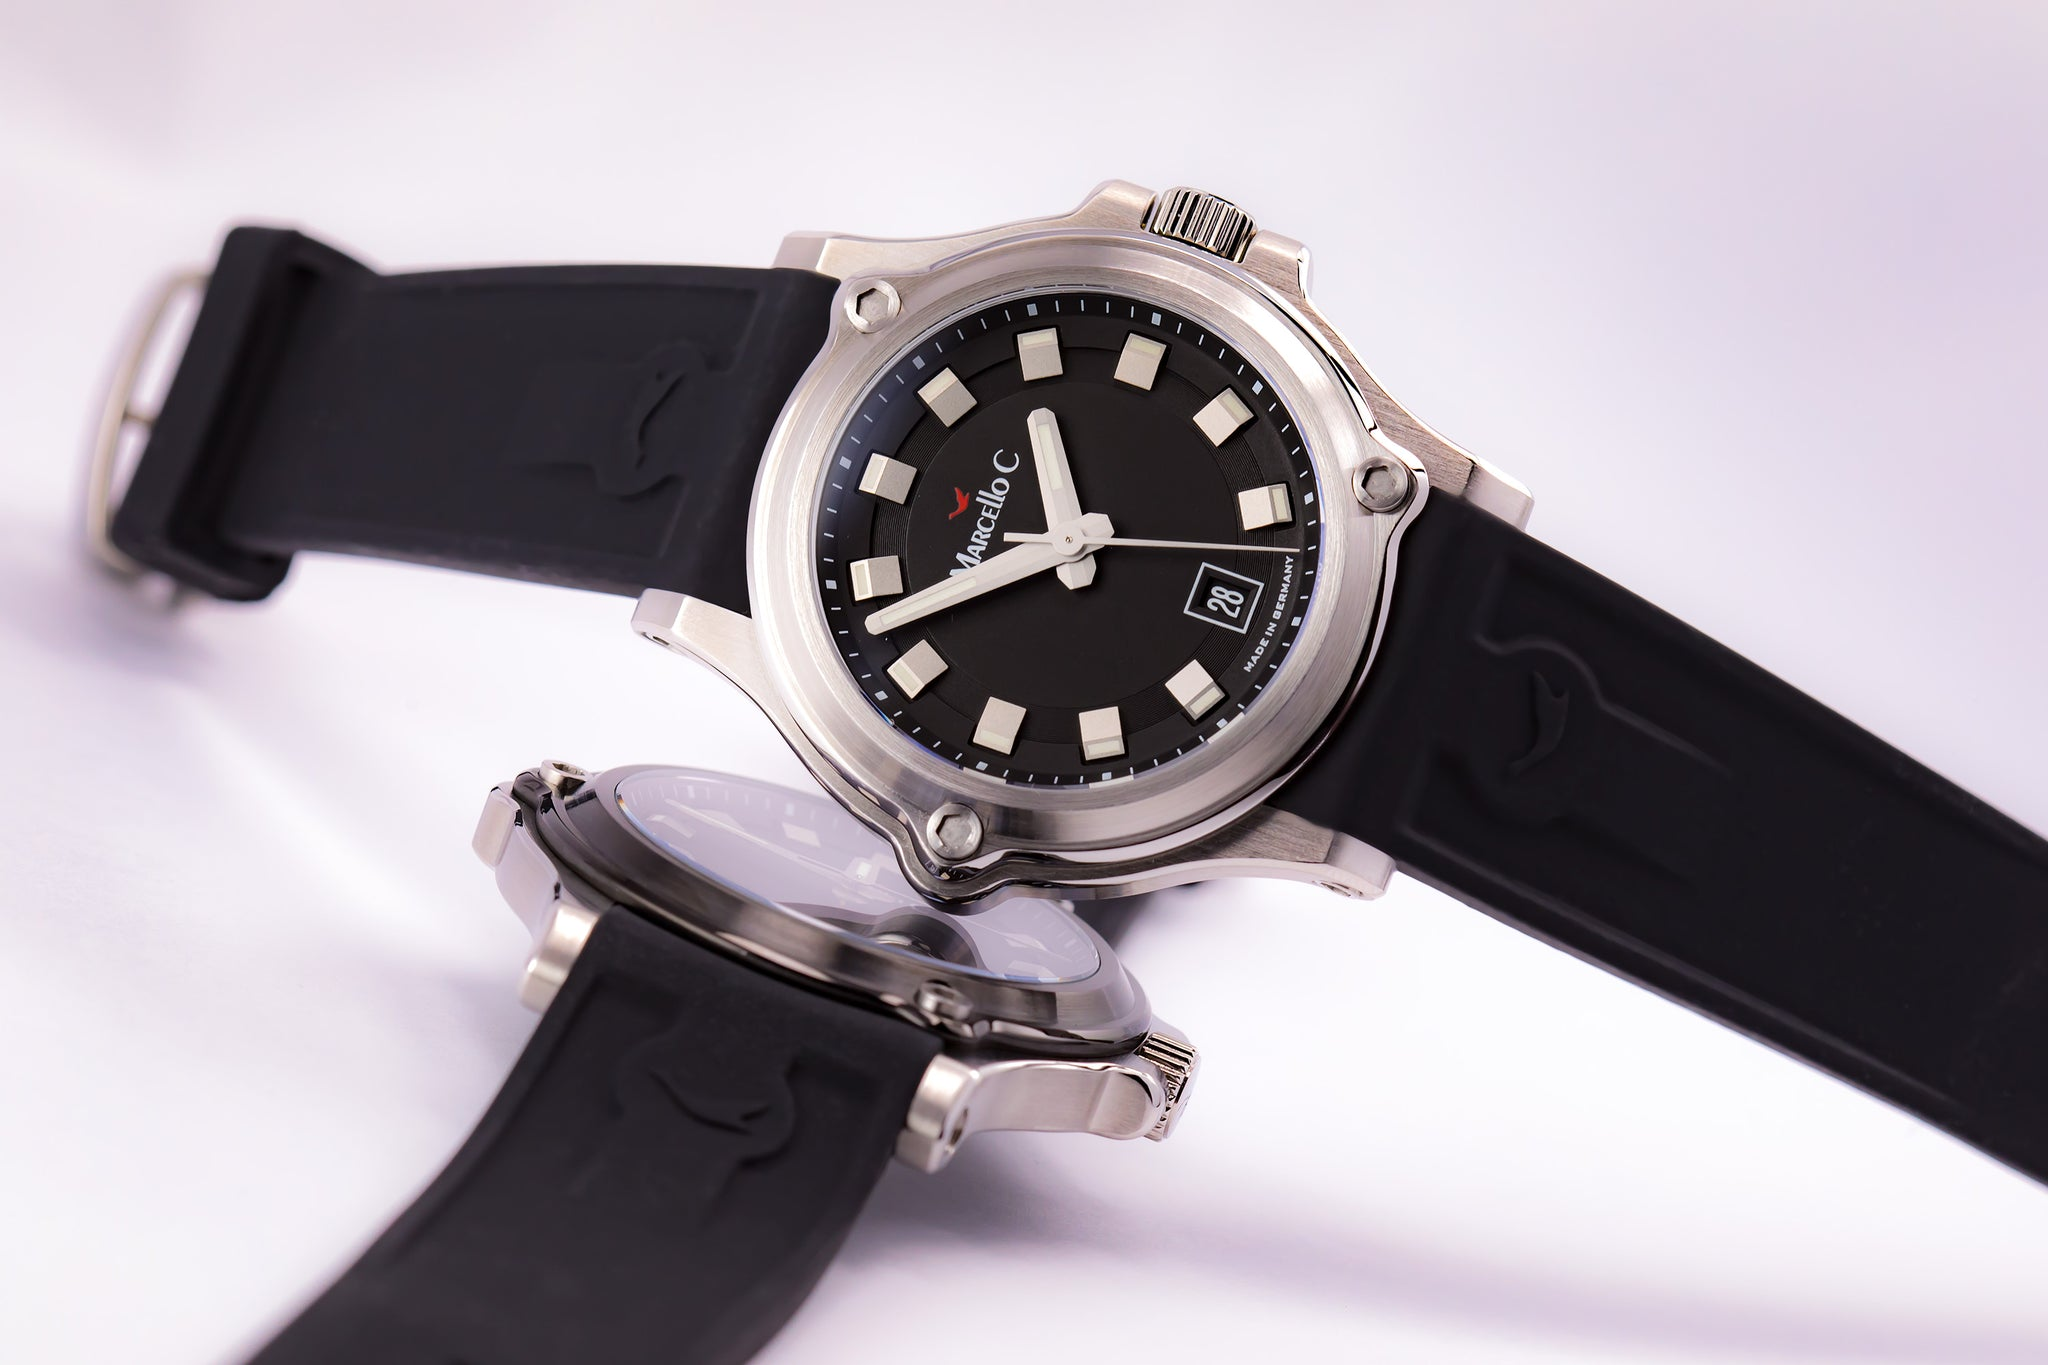 Marcello C. Marine Automatic Steel/PVD 200m Porthole